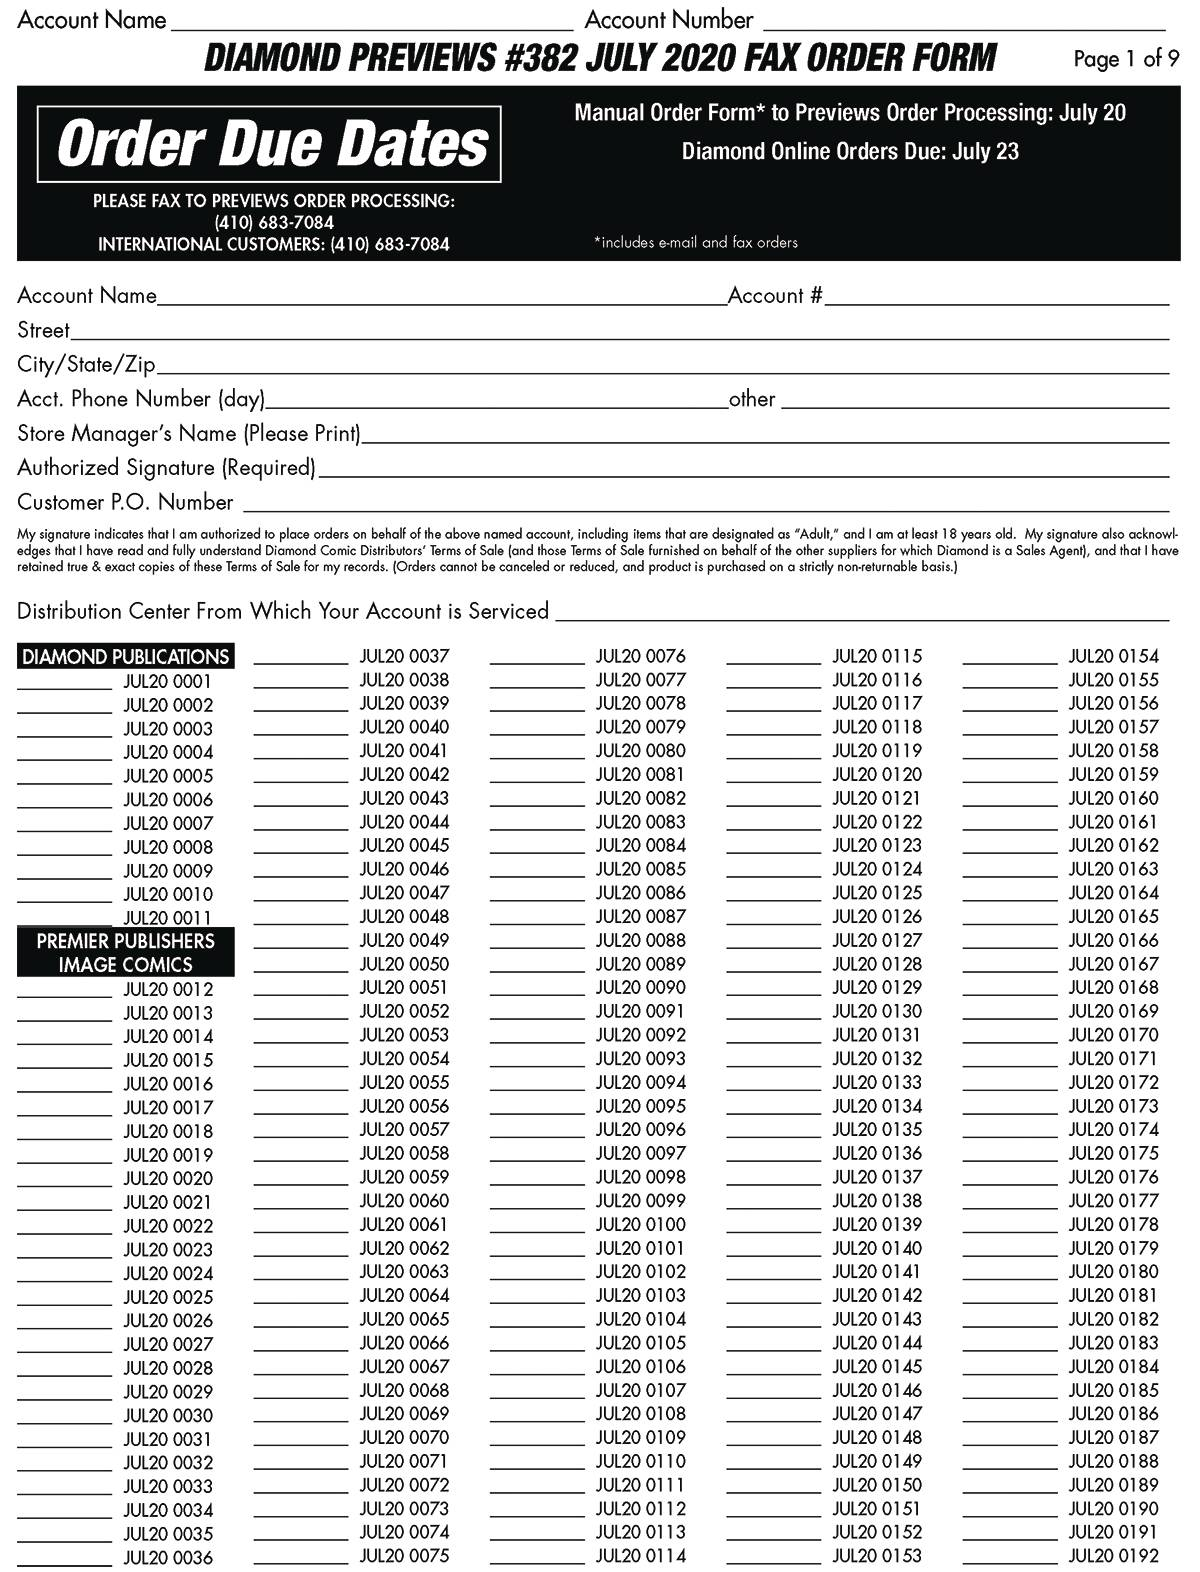 PREVIEWS FAX ORDER FORM